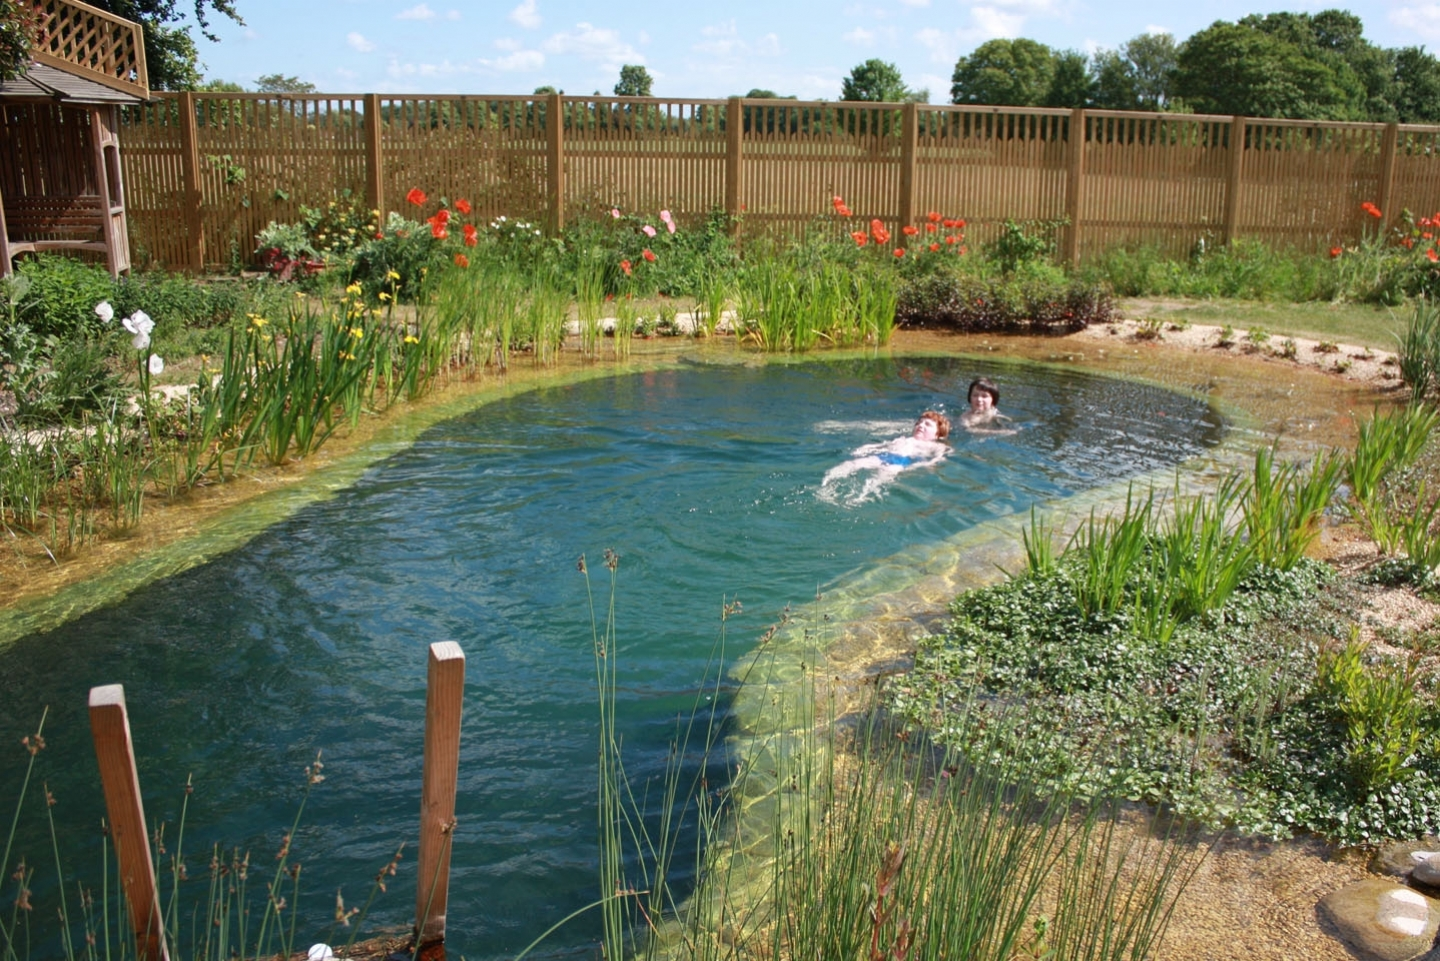 Gartenart portfolio swimming pond cambridgeshire for Pond swimming pool